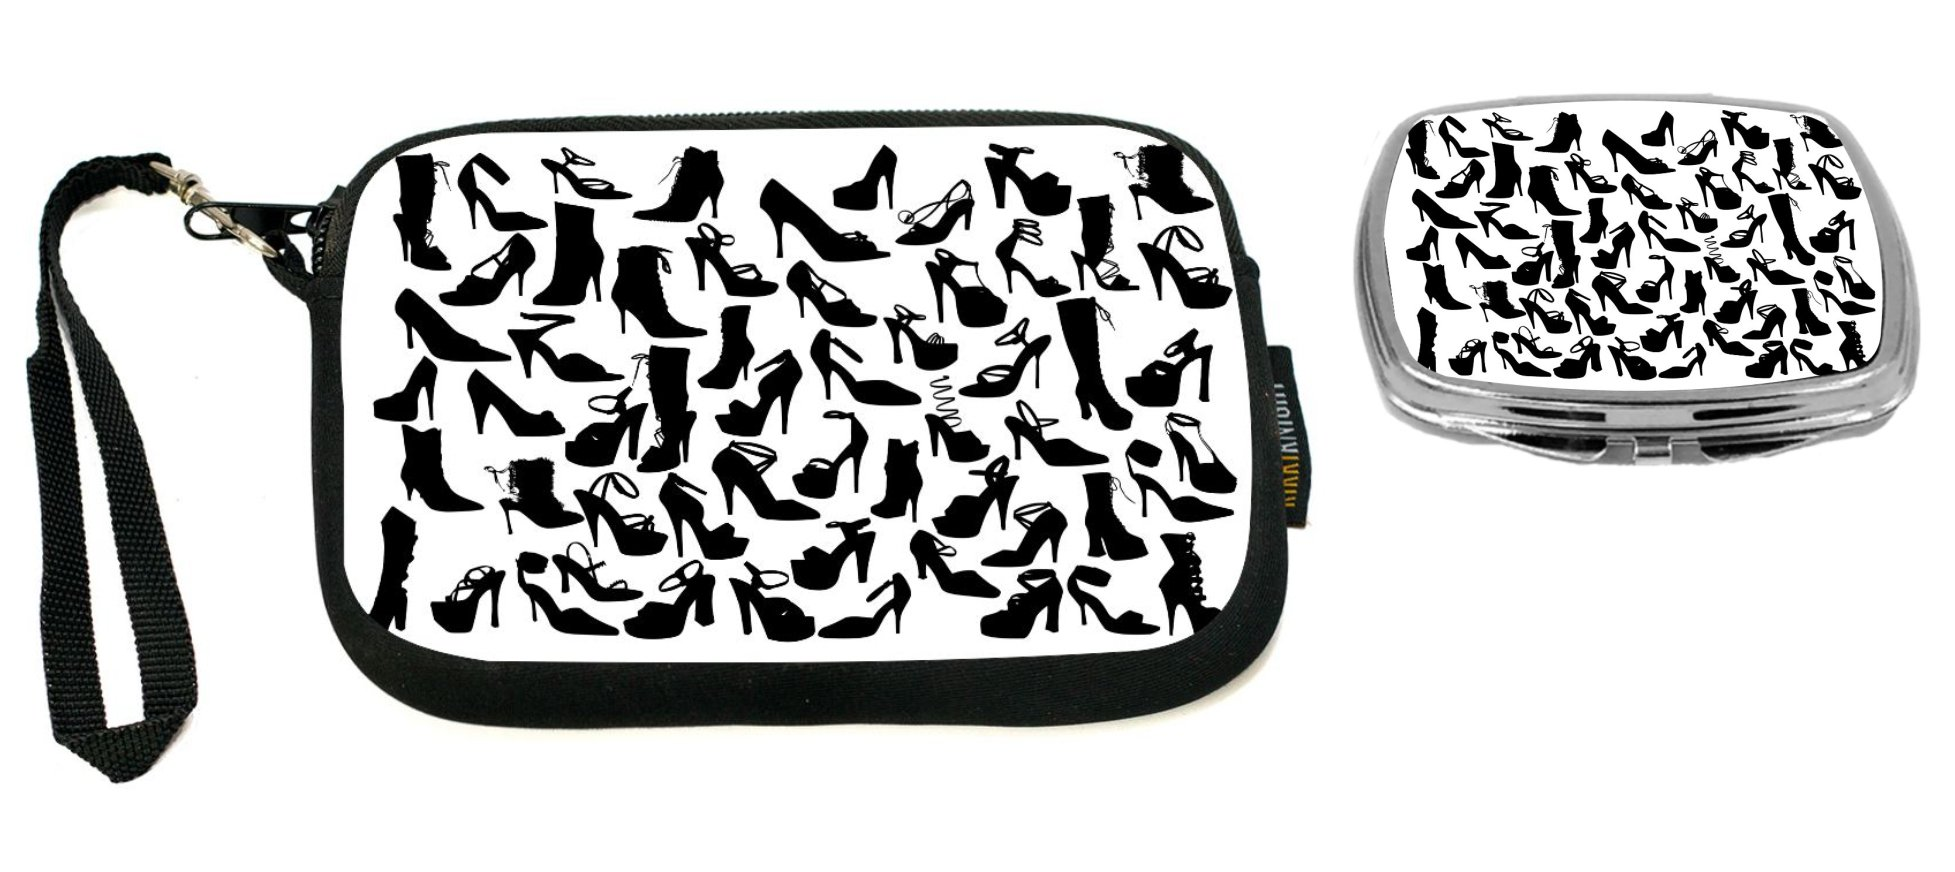 Rikki Knight Silhouette Fashion Shoes Design Neoprene Clutch Wristlet with Matching Square Compact Mirror